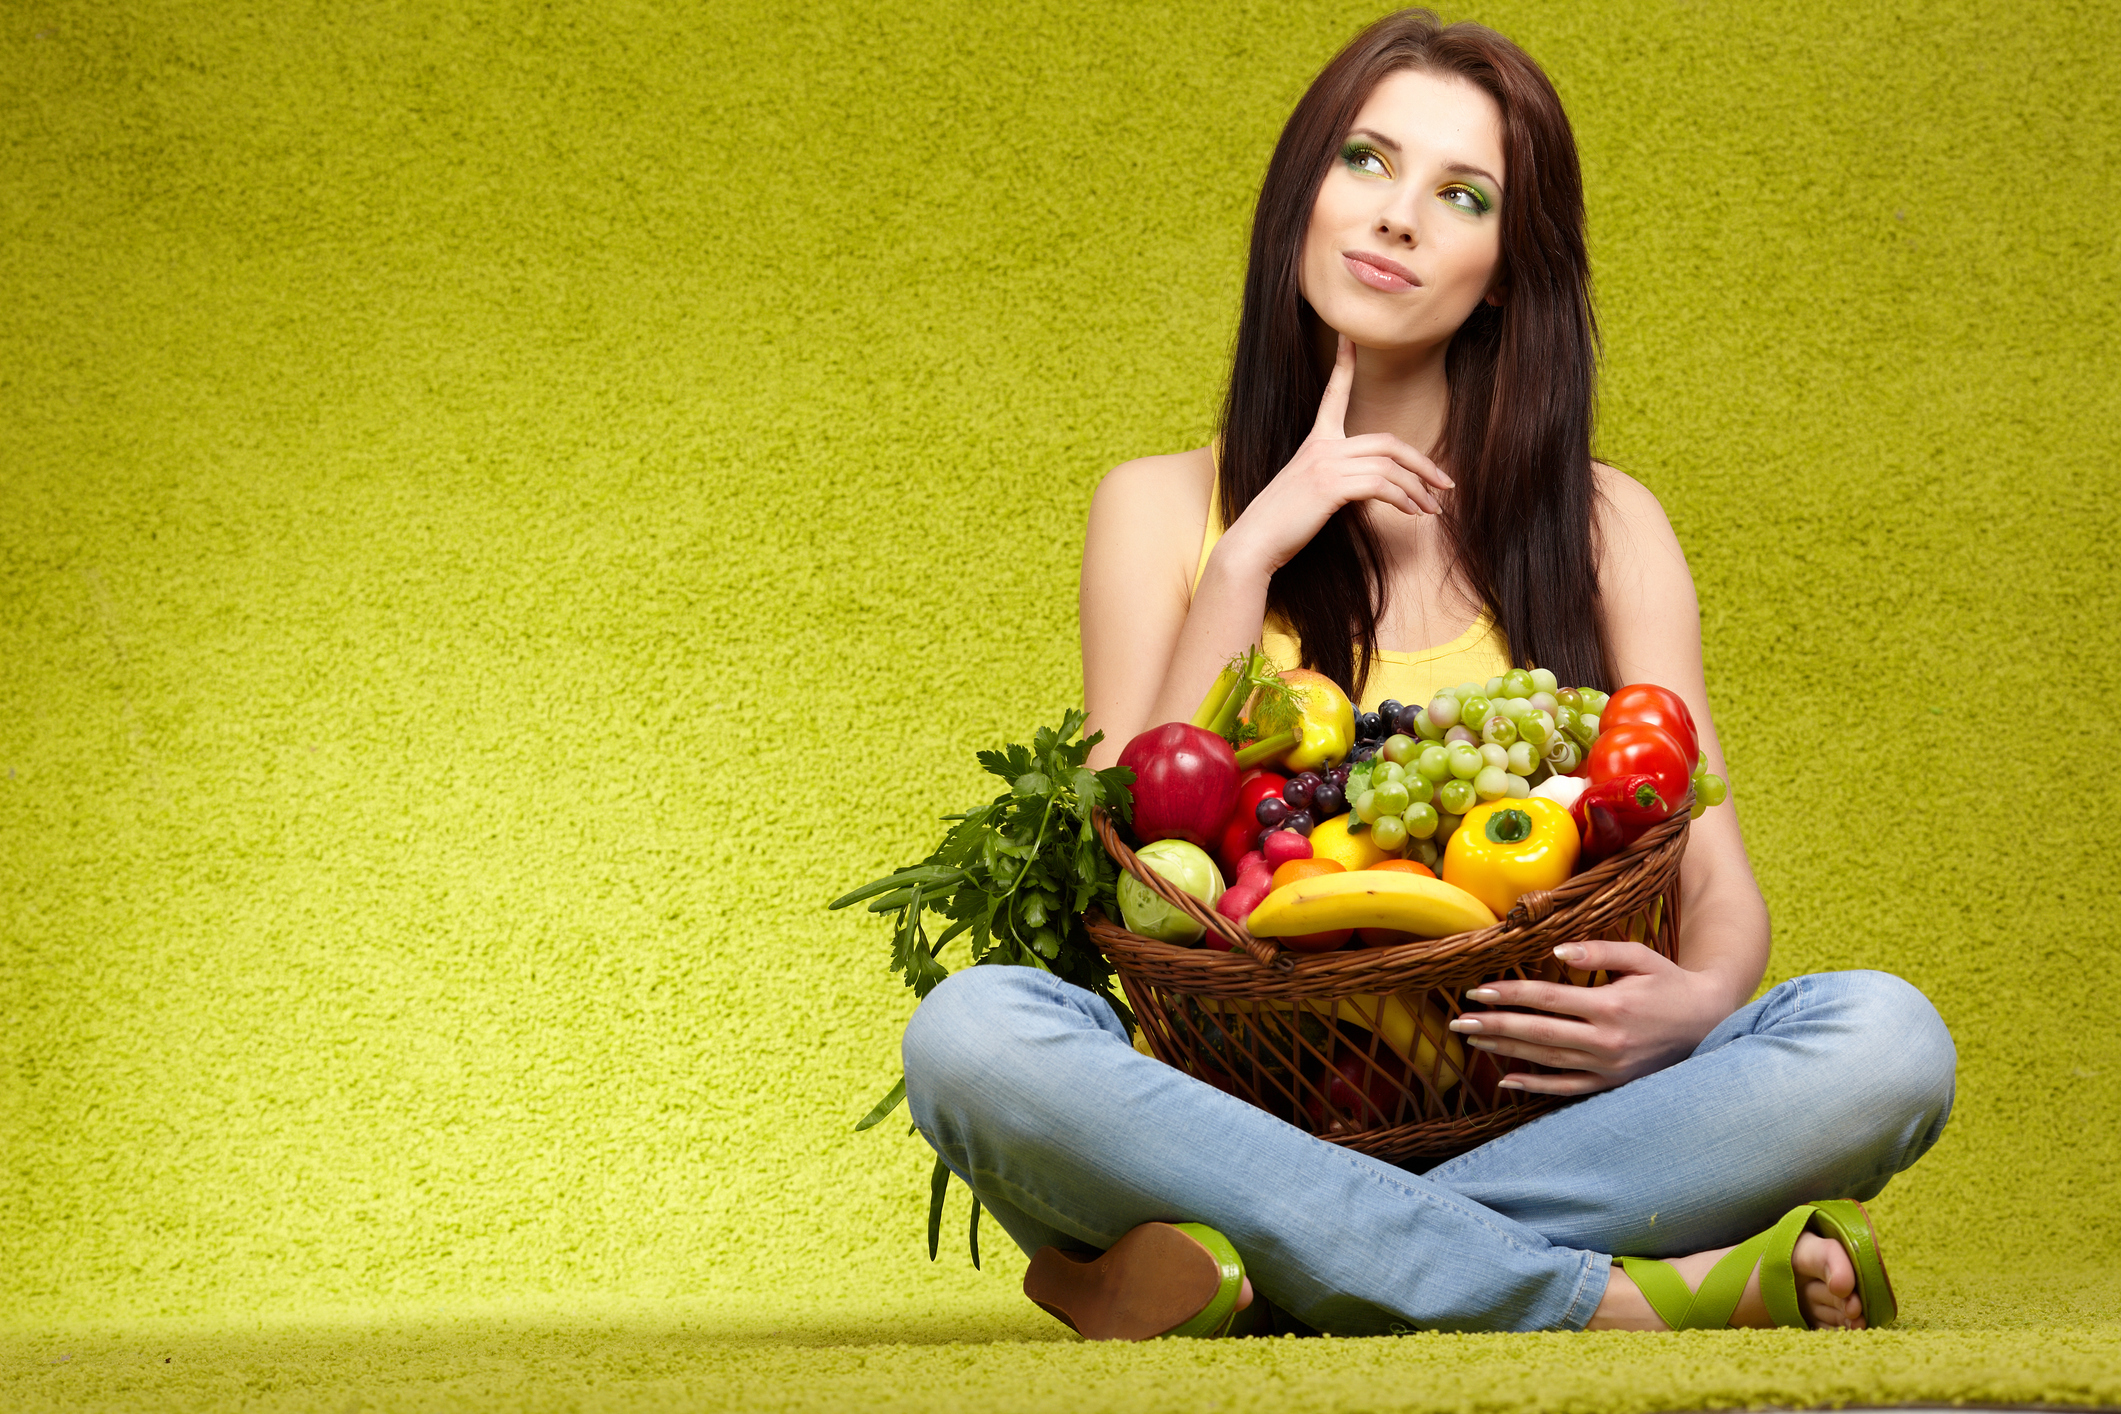 Shopping for fruits & veggies, green background